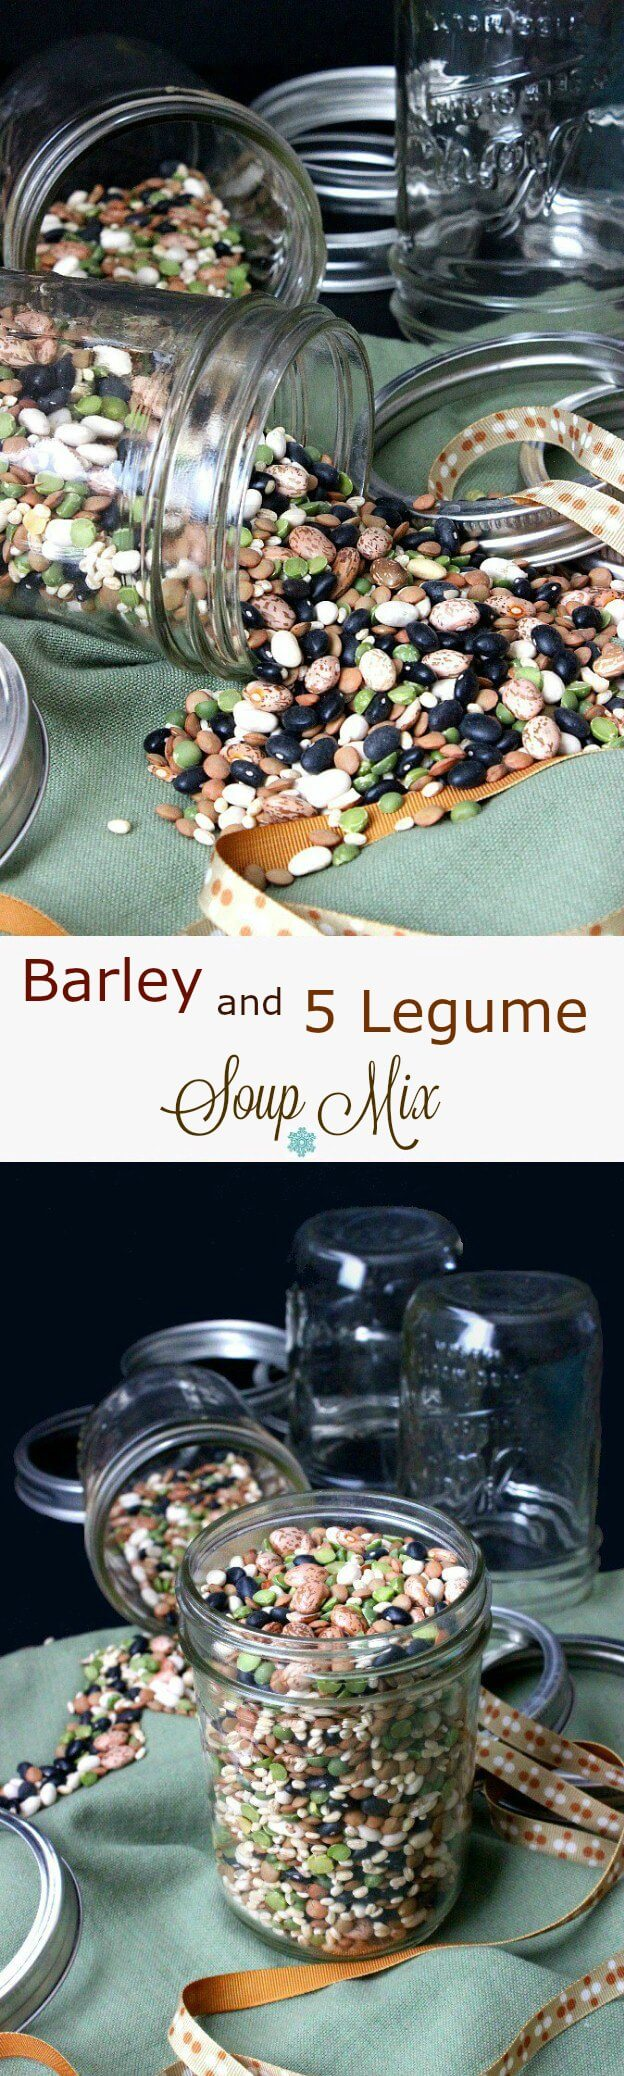 5 Legume Soup Mix with Barley is an easy and updated gift. Pretty on the counter or fill jars as gifts & attach the recipe. Recipe included!  Healthy dinner too! #beansoup #giftinajar